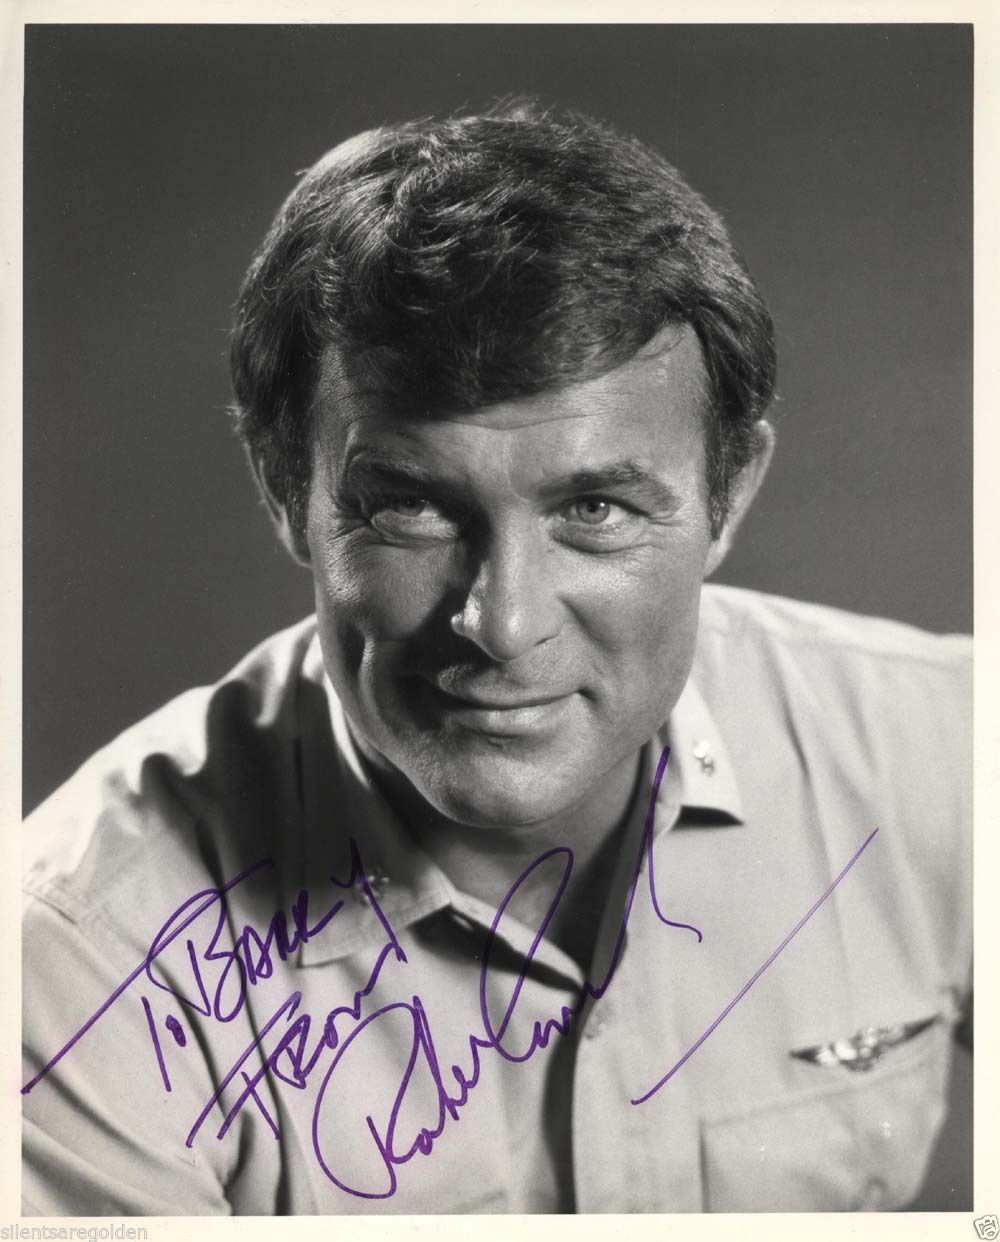 robert conrad maladerobert conrad duke university, robert conrad now, robert conrad, robert conrad wiki, robert conrad wild wild west, robert conrad wikipedia, robert conrad duke, robert conrad net worth, robert conrad accident, robert conrad death, robert conrad imdb, robert conrad age, robert conrad malade, robert conrad mort, robert conrad health, robert conrad hitler bunker, robert conrad est il mort, robert conrad taille, robert conrad battery, robert conrad columbo